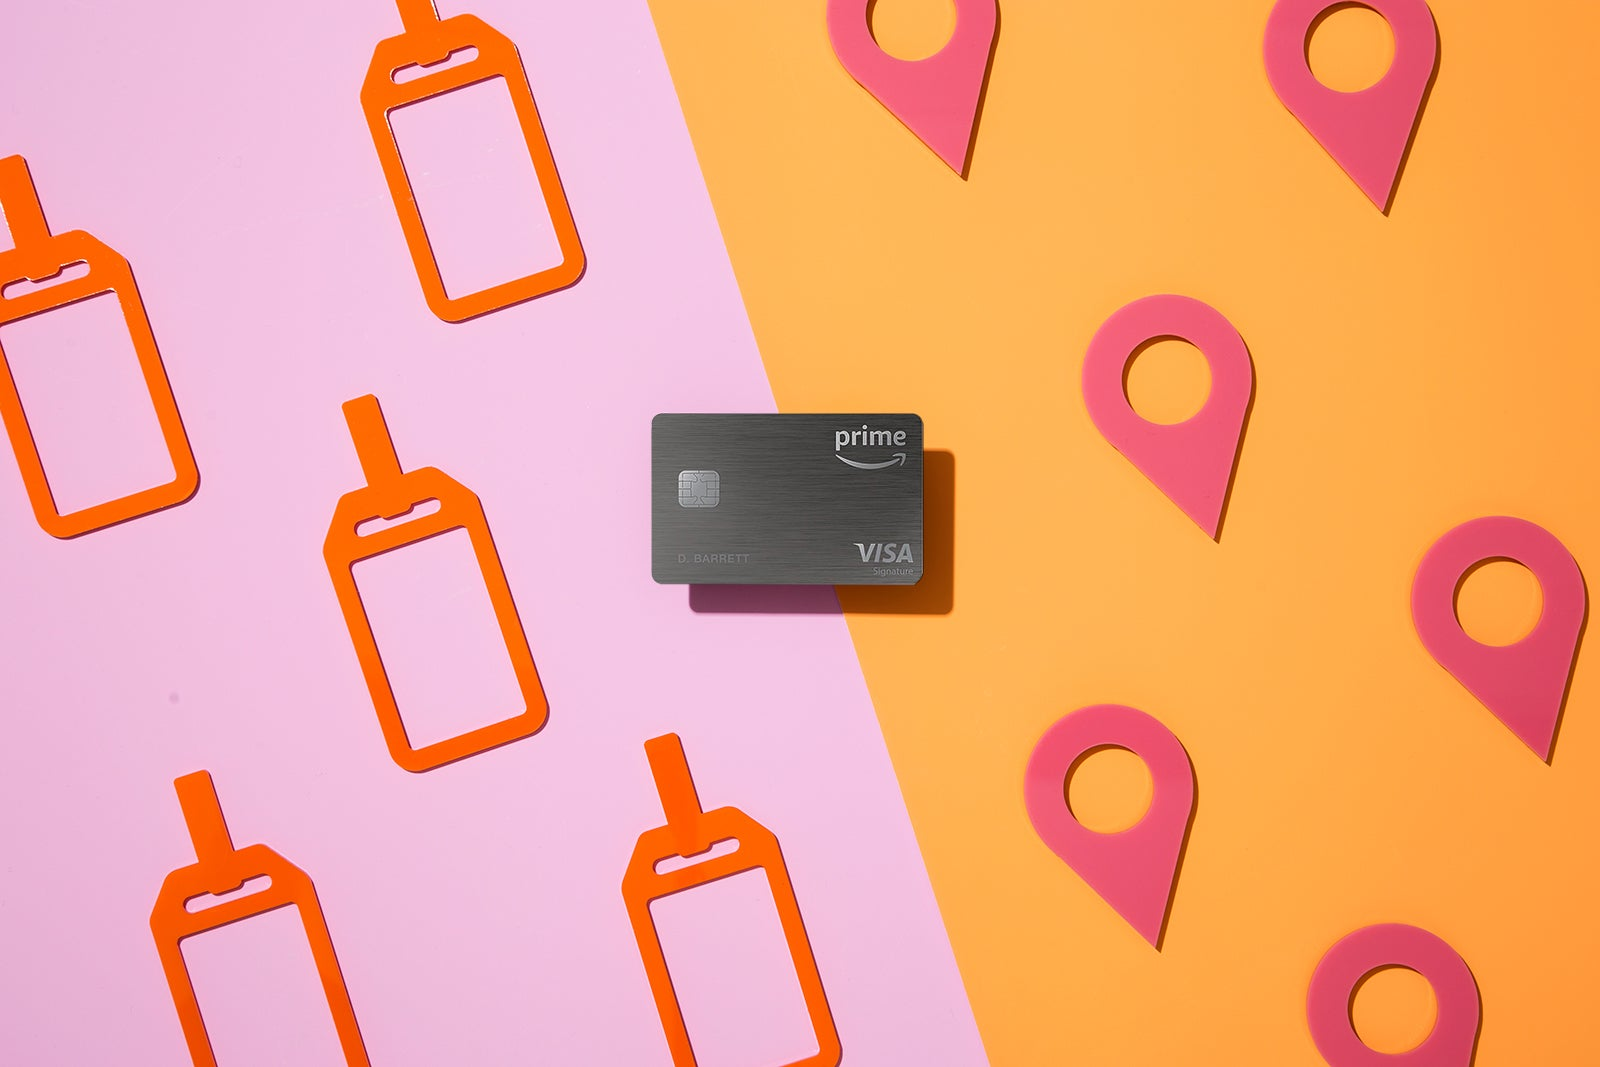 Amazon cardholders get 25% back on select products beginning today